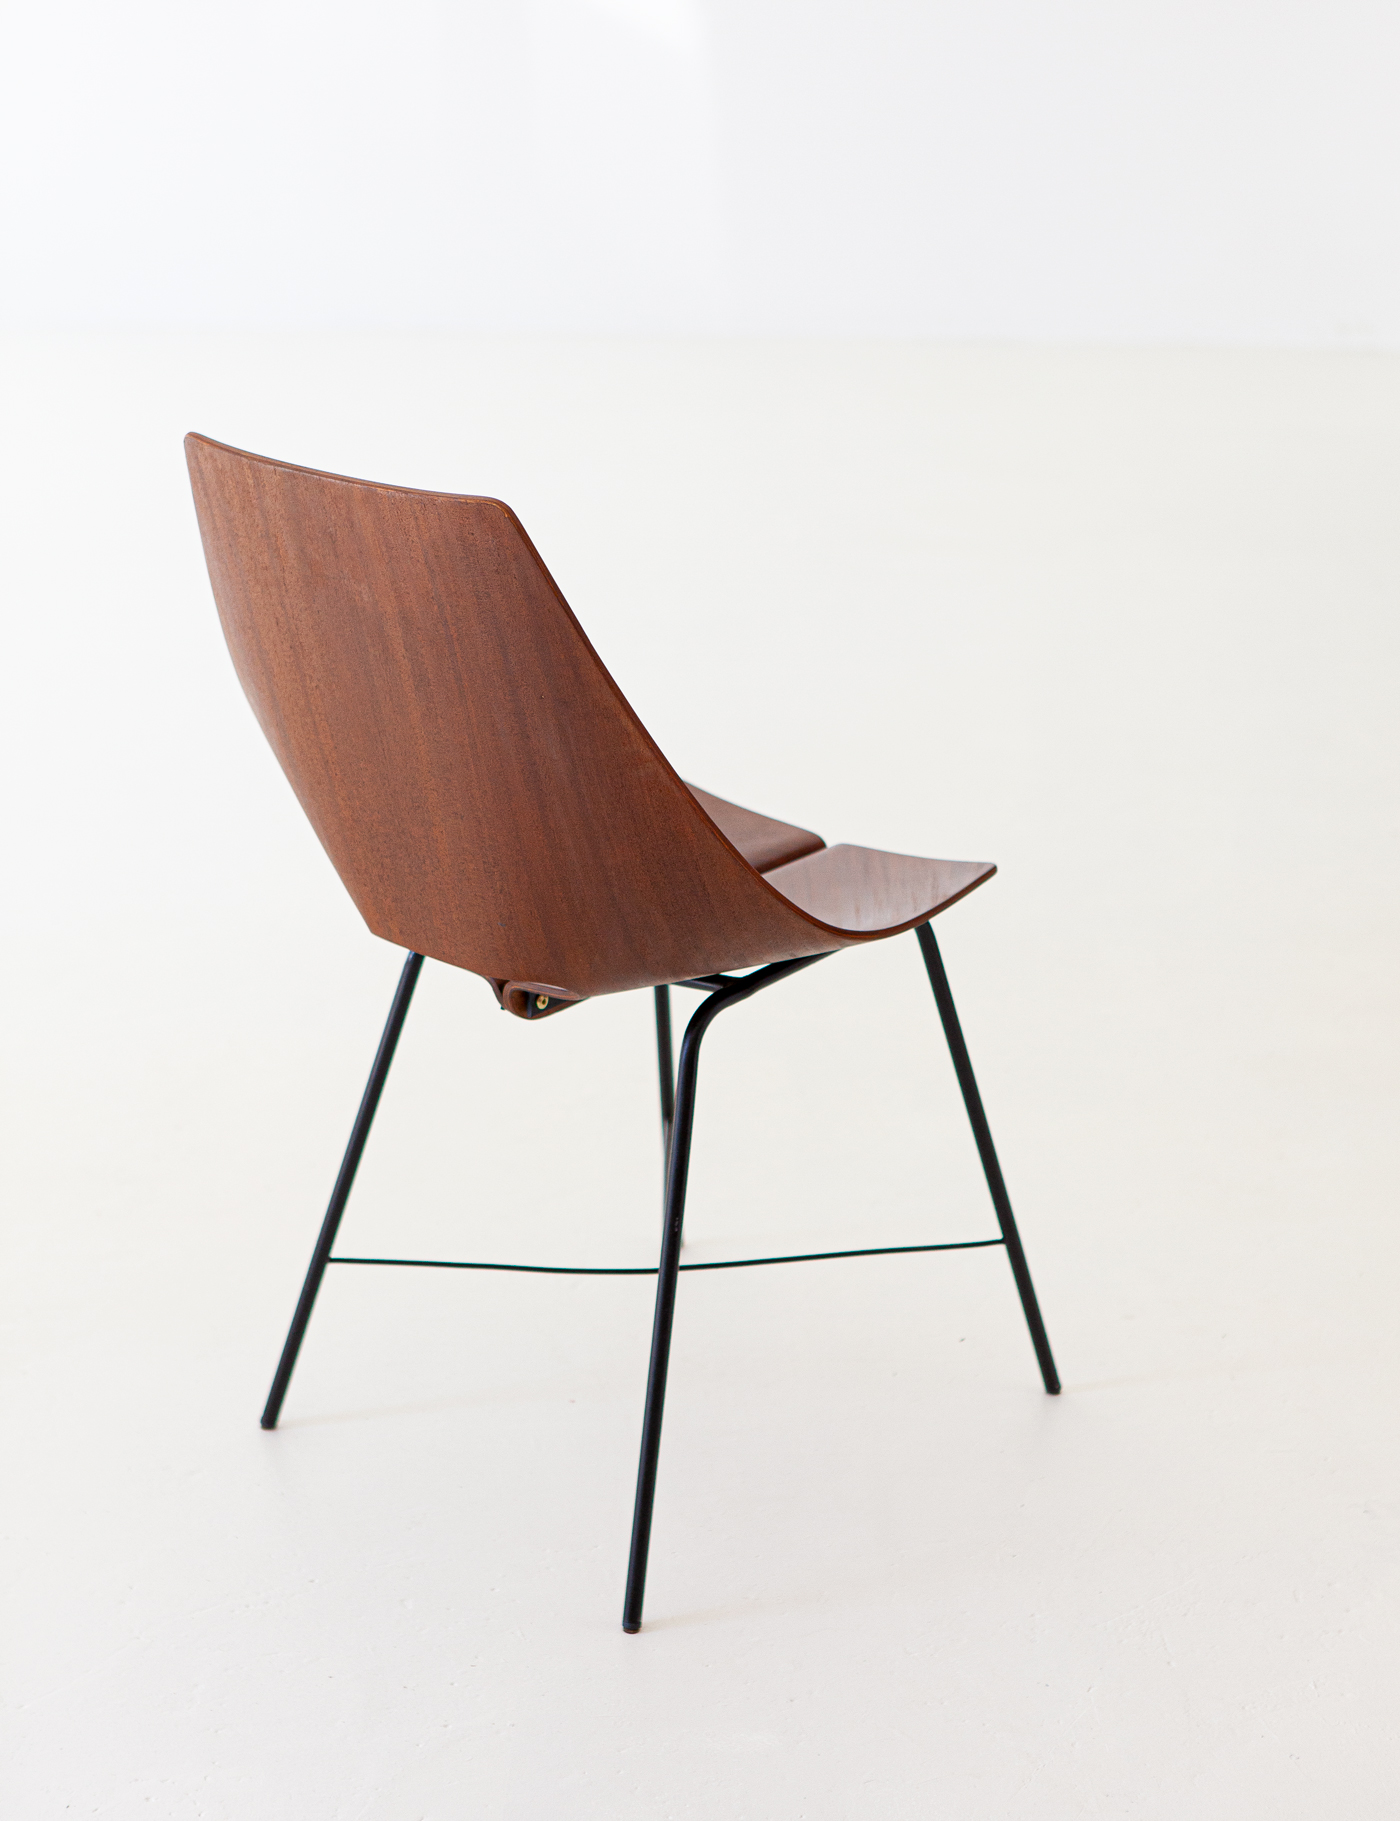 1950s-modern-curved-rosewood-chair-by-societa-compensati-curvati-4-se289